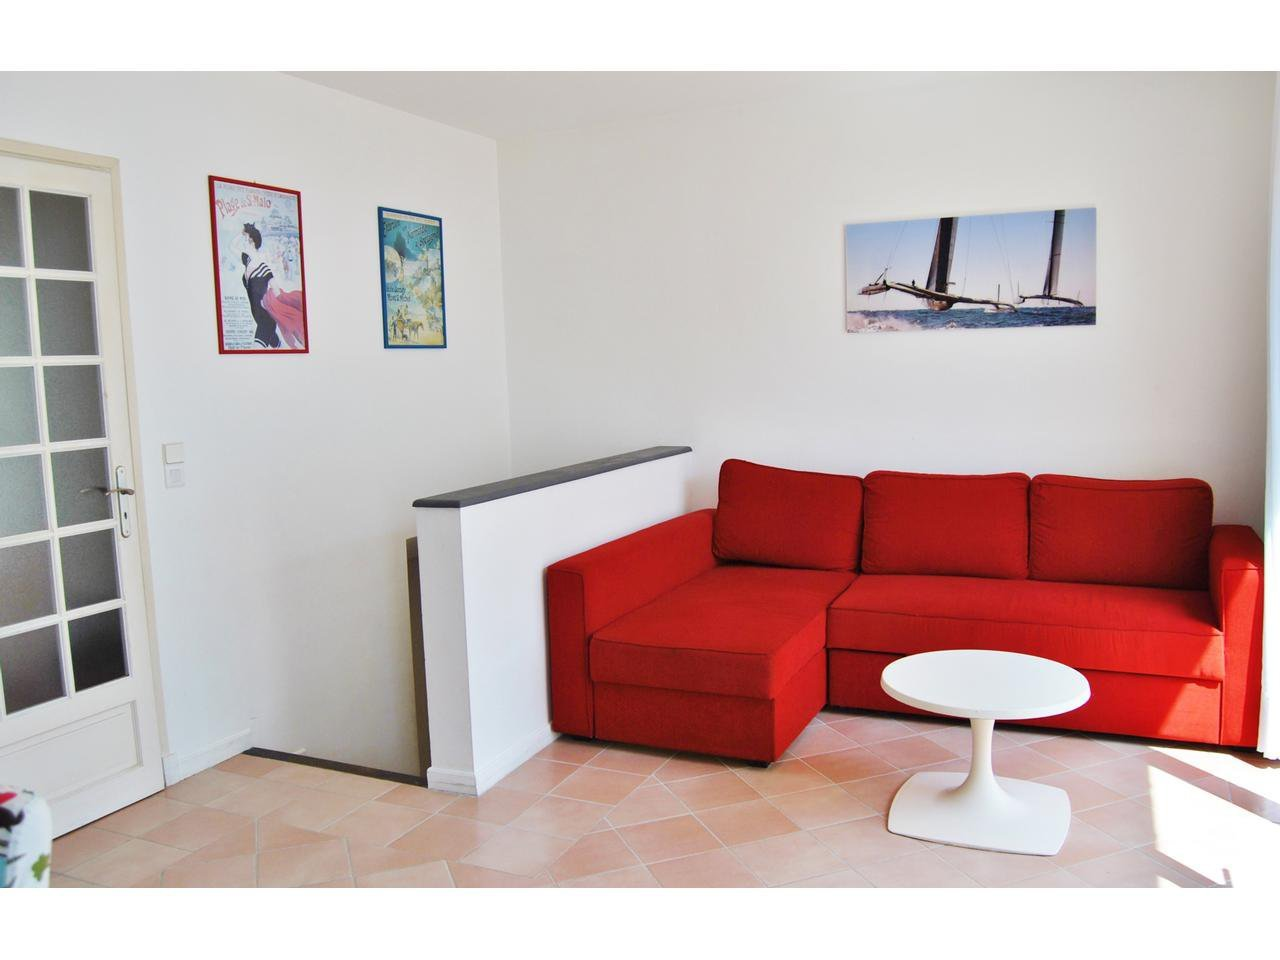 2 bedrooms villa with 2 parking space and garden  in Cap d'Ail